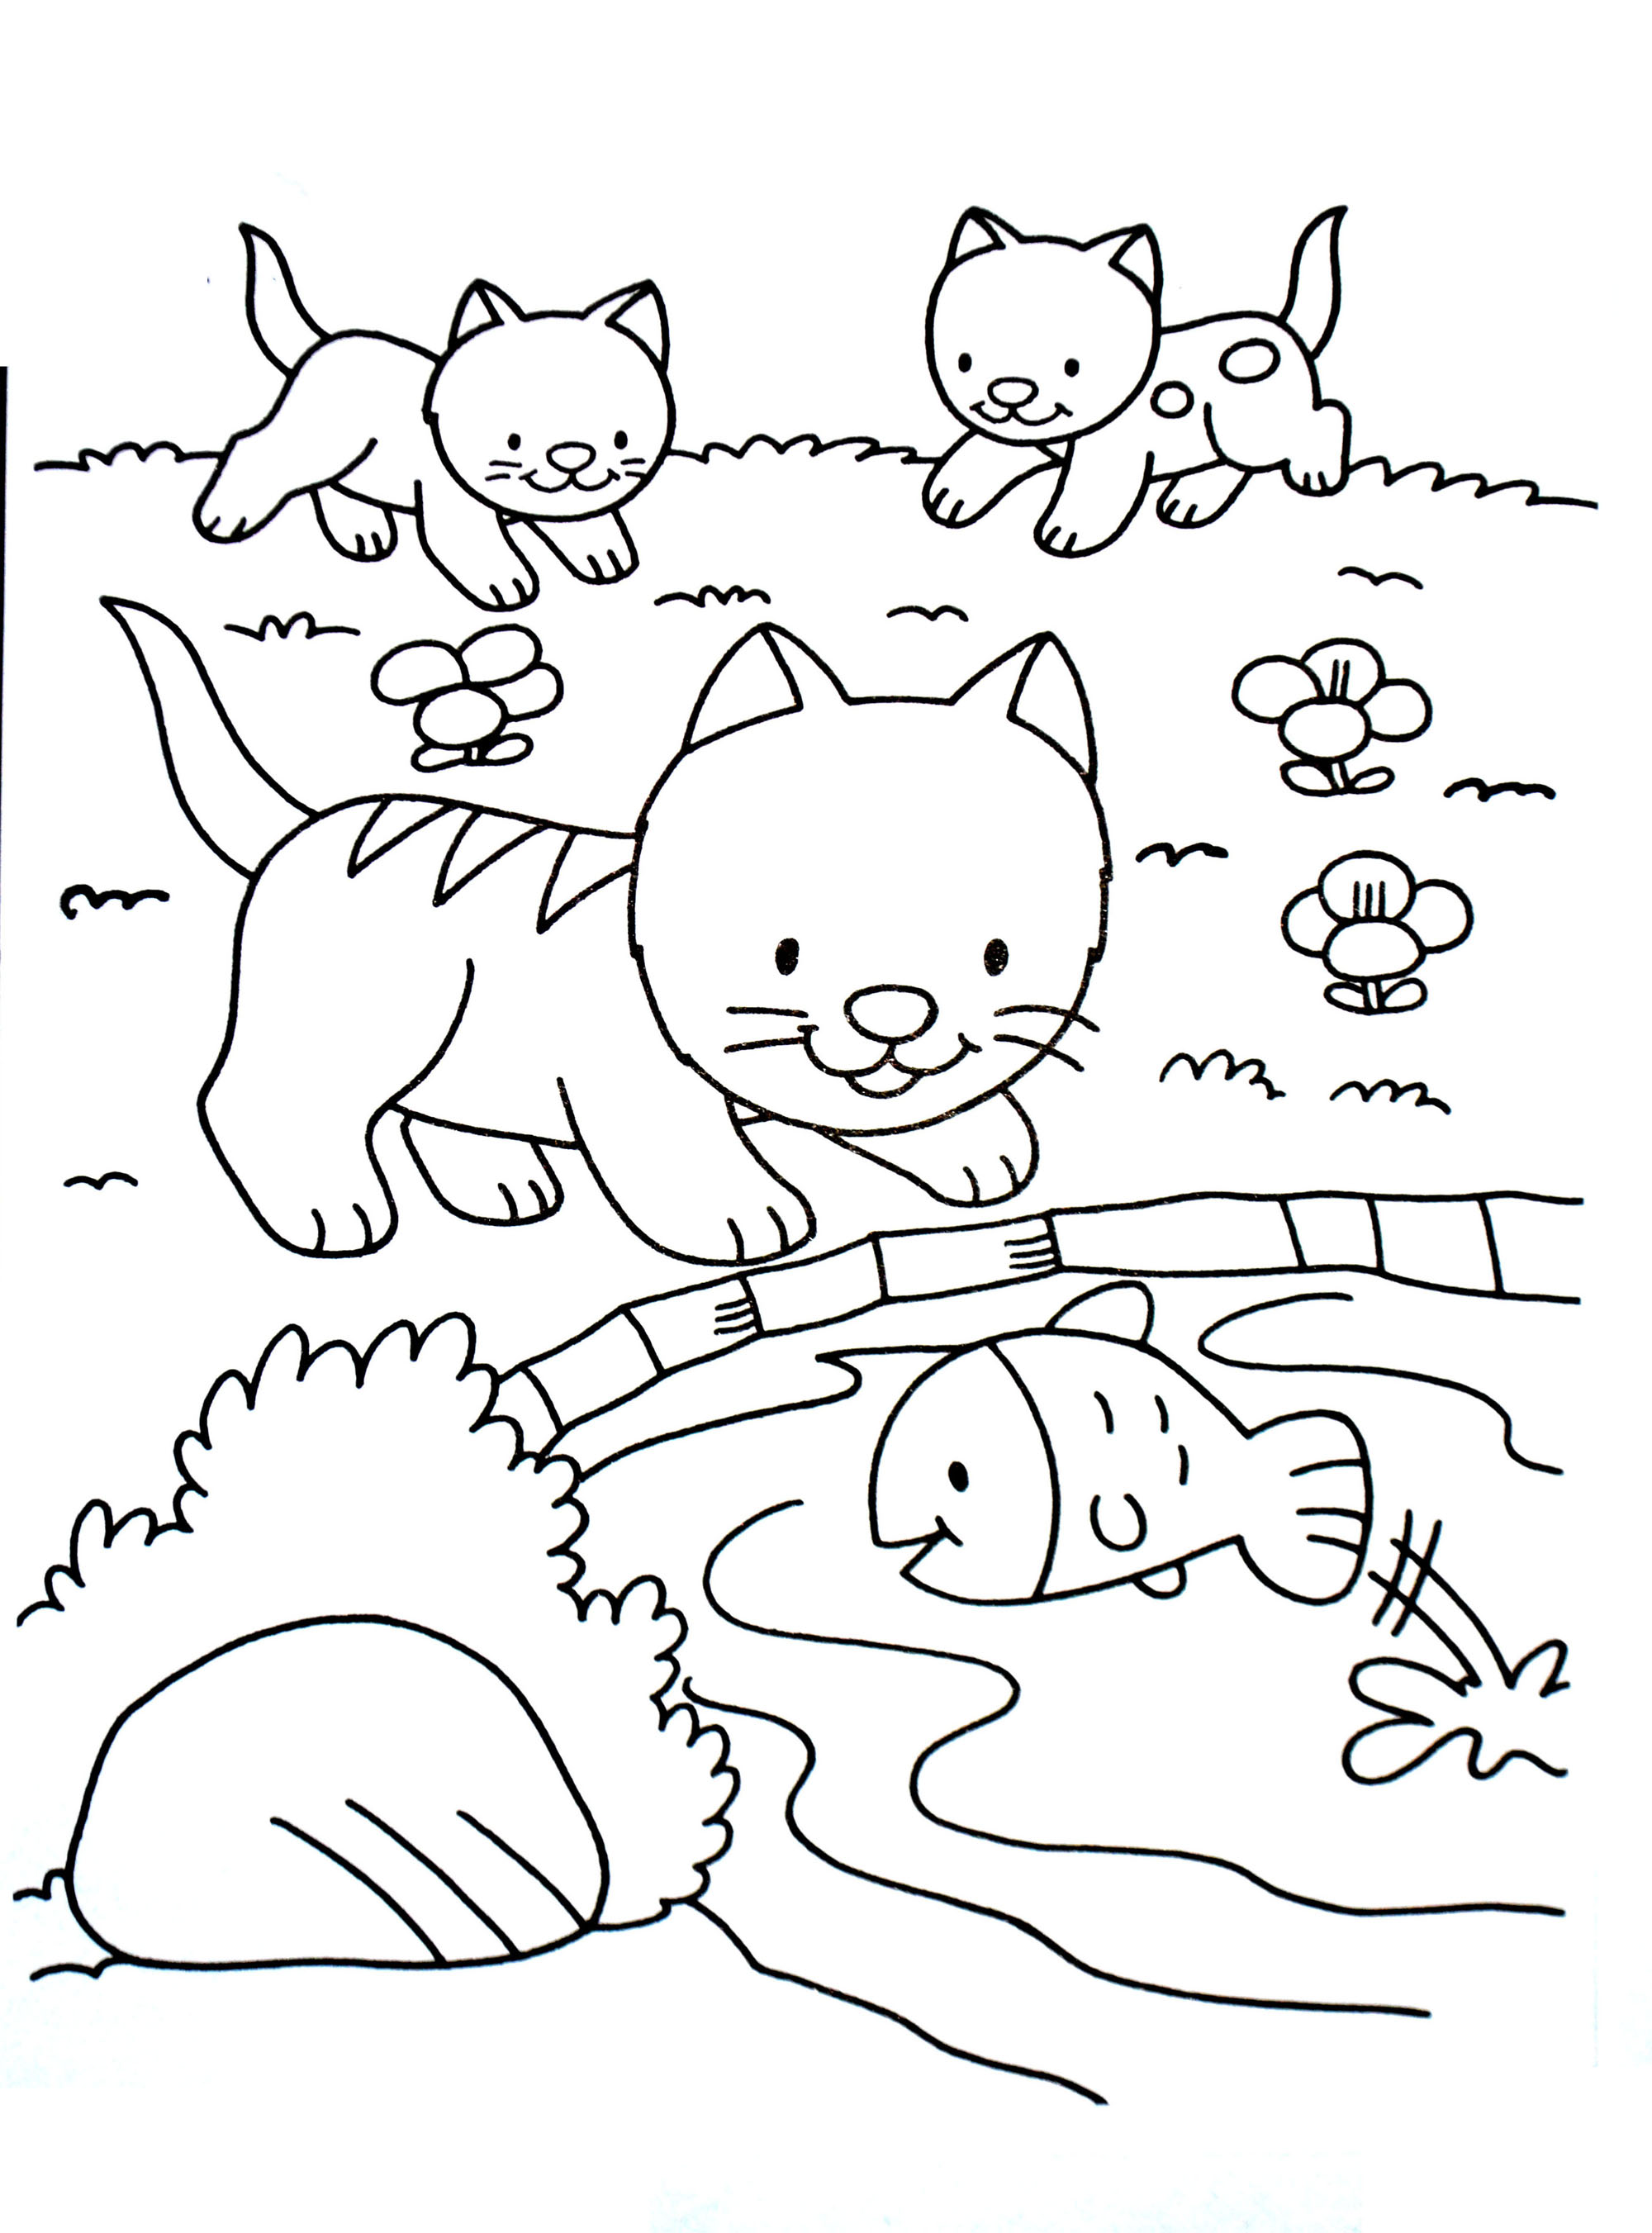 Simple Cat coloring page for kids : Kittens playing and fish